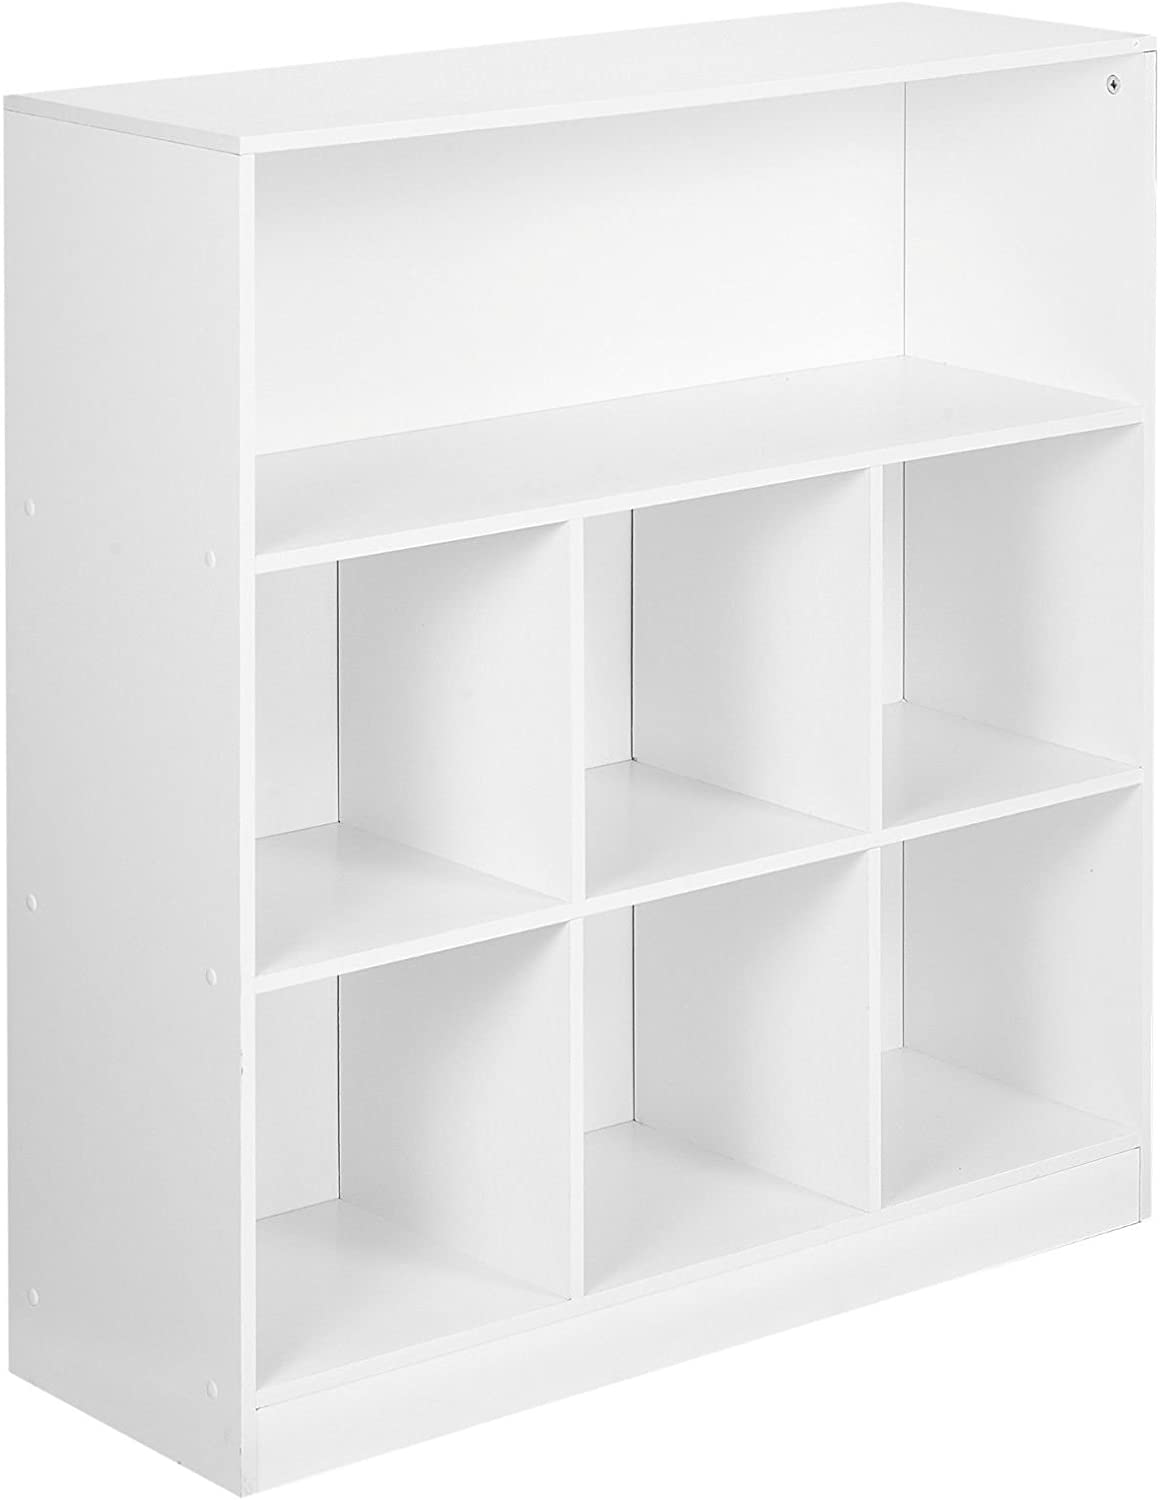 URBNLIVING White Wide Wooden 7 Cube Bookcase Storage Unit